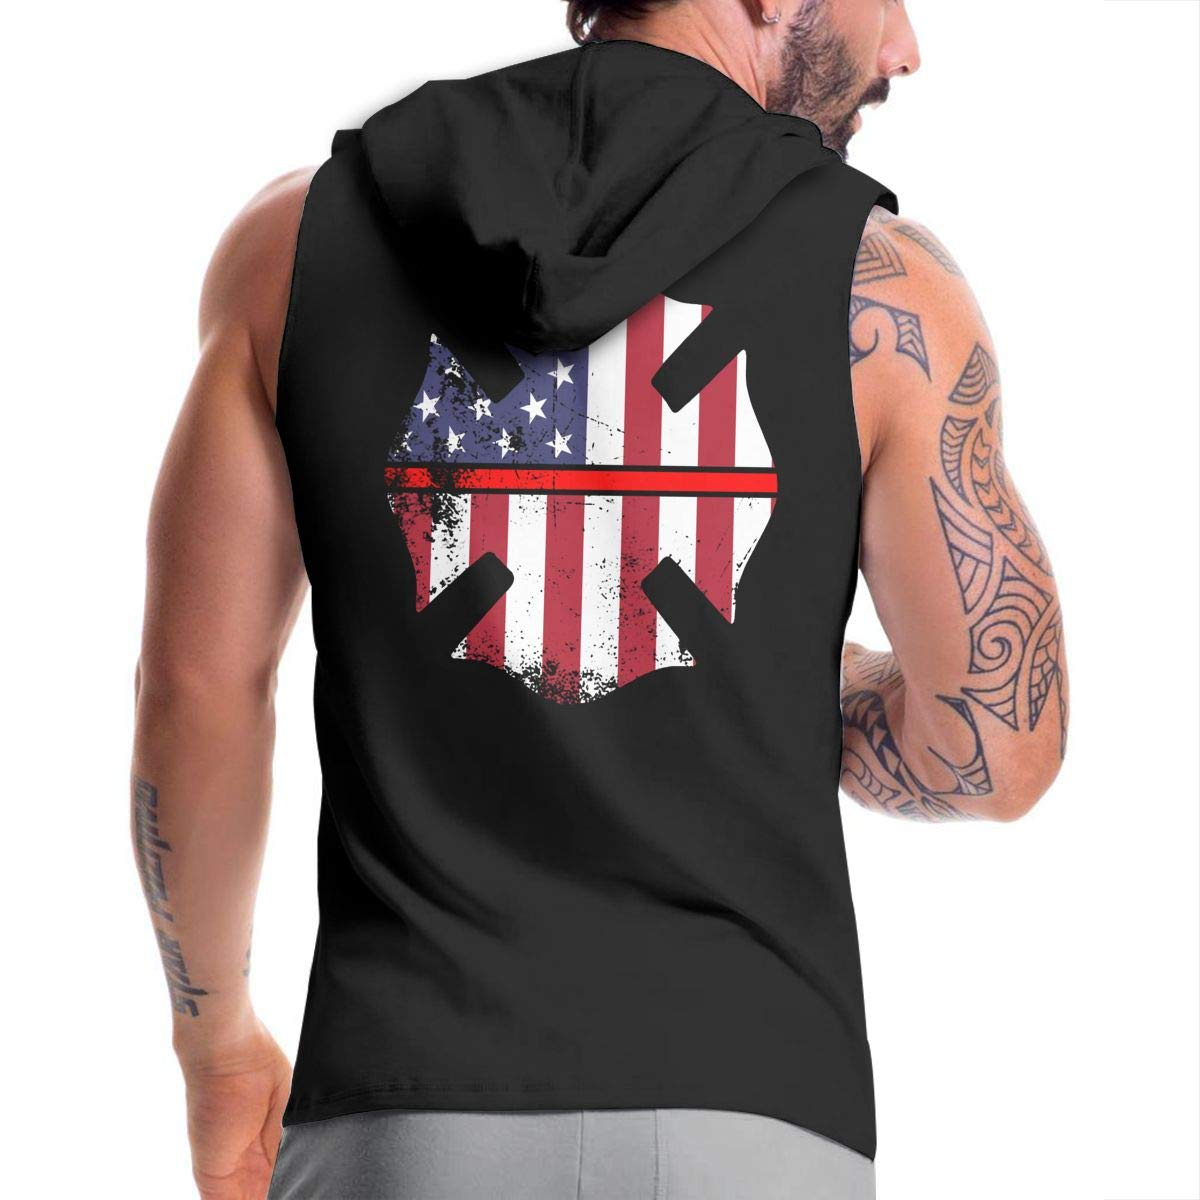 Ice-Long Out X American Firefighter Mens Fashion Sleeveless Zip-up Hoodie Black with Pocket